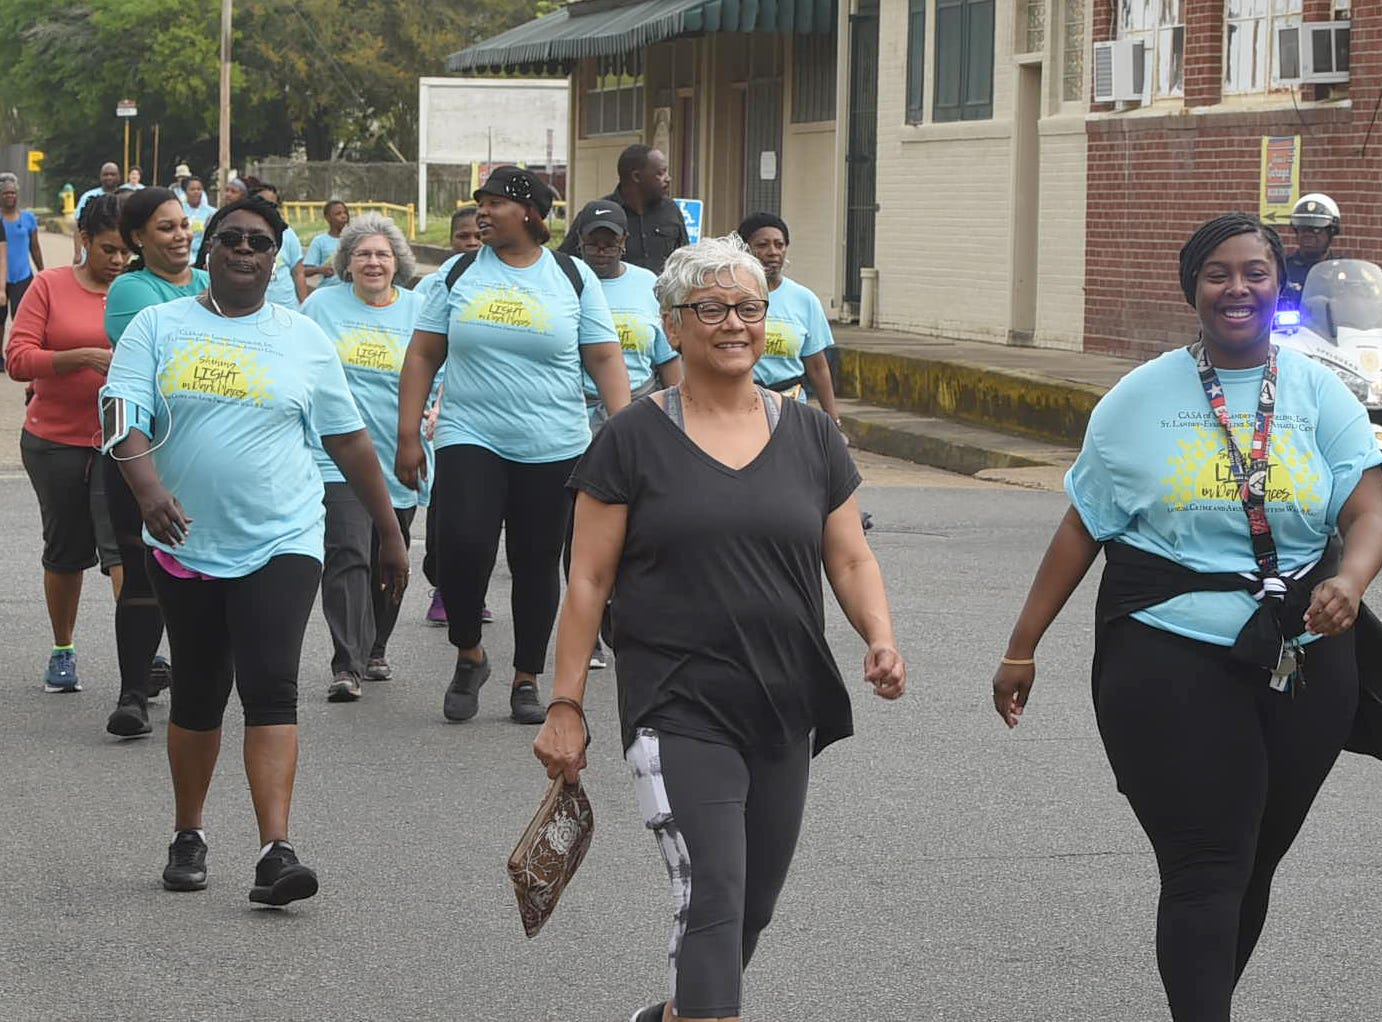 Community Crime and Abuse Prevention March sponsored by CASA St. Landry-Evangelne Parish and the St. Landry-Evangeline Sexual Assault Center.